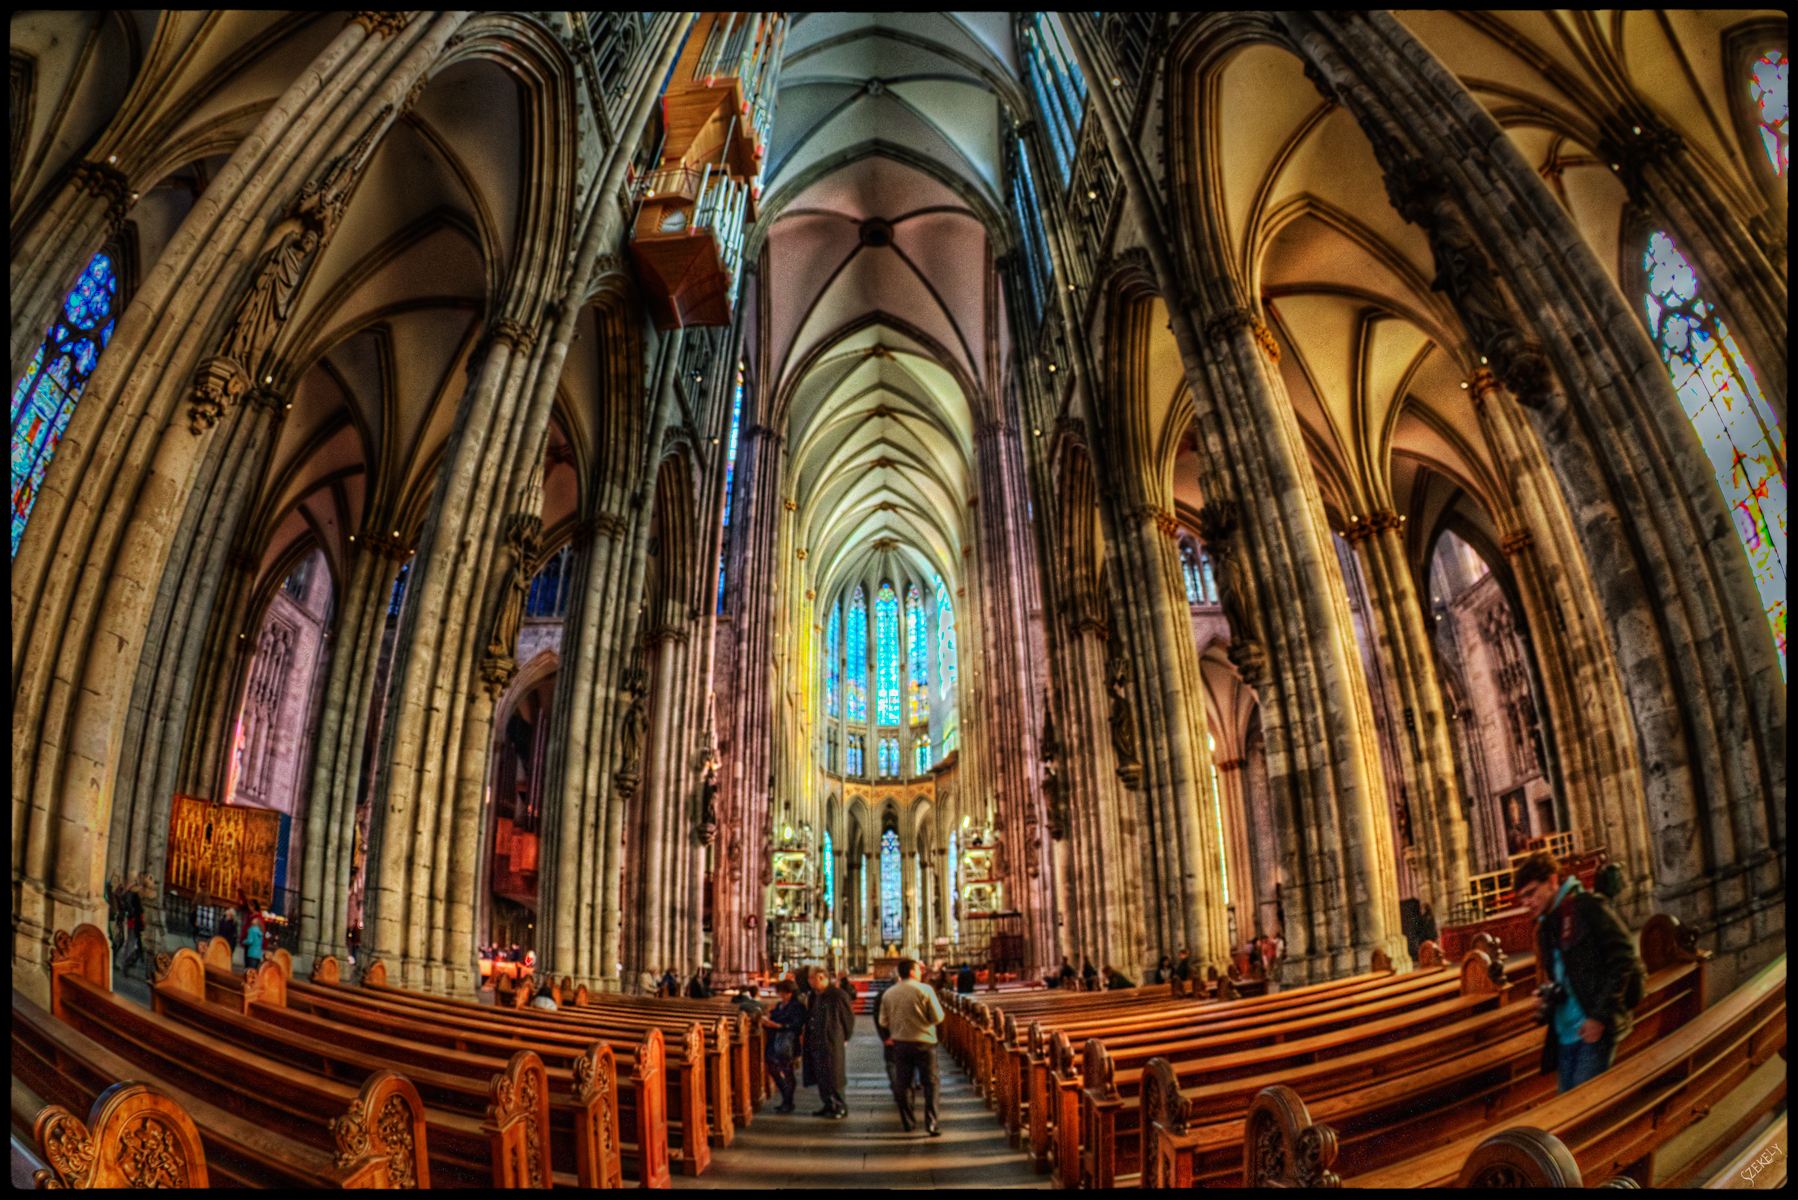 Photograph of the Cologne Cathedral in Cologne, Germany.